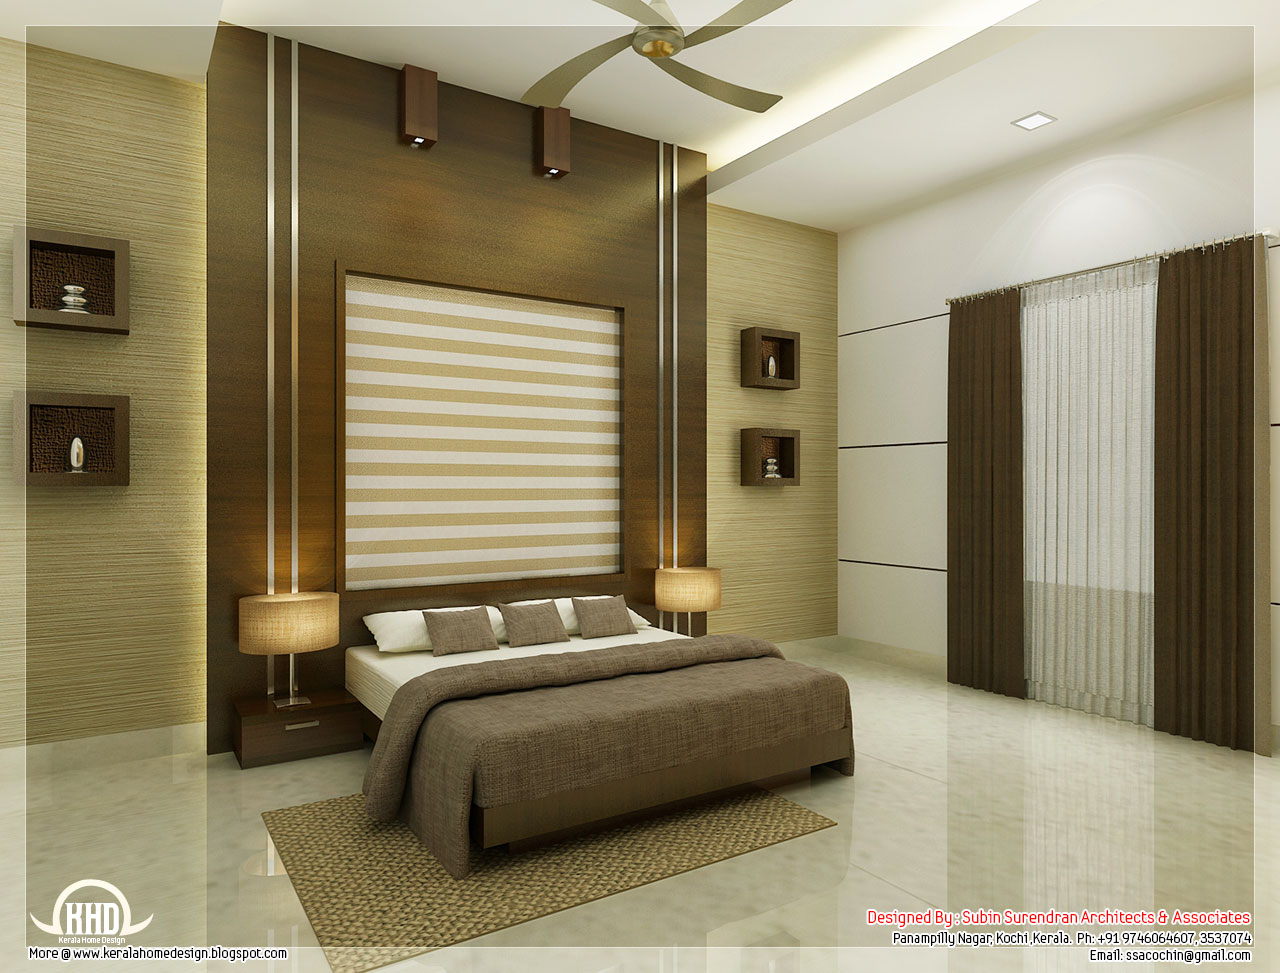 Interior Desings Of Beautiful Bedroom Interior Designs Kerala Home Design